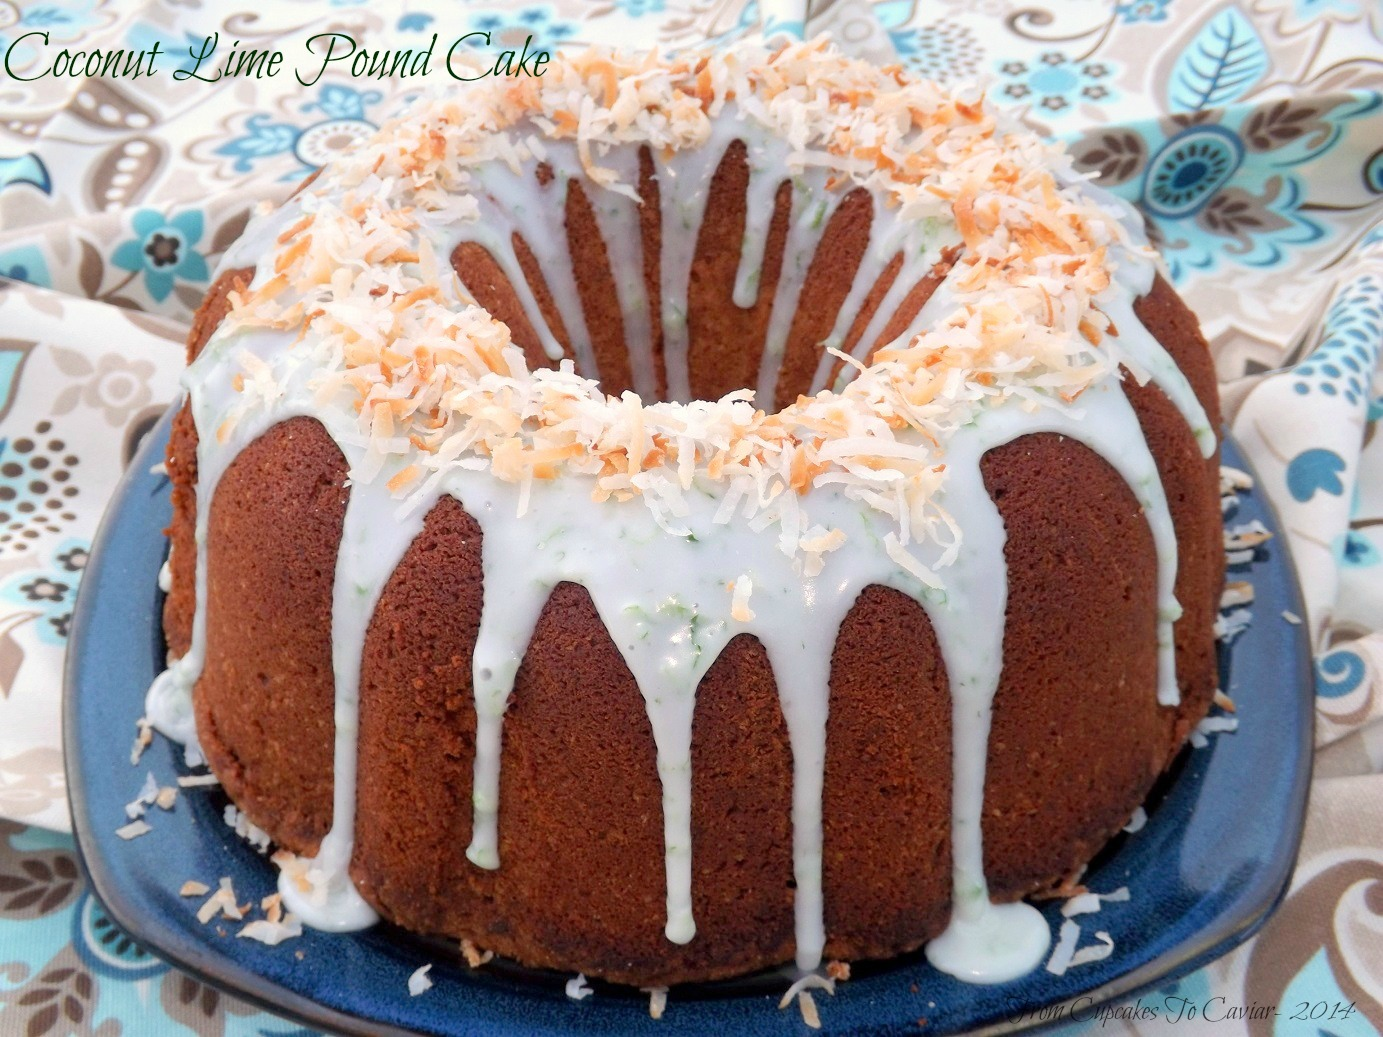 Coconut Lime Pound Cake | From Cupcakes To Caviar